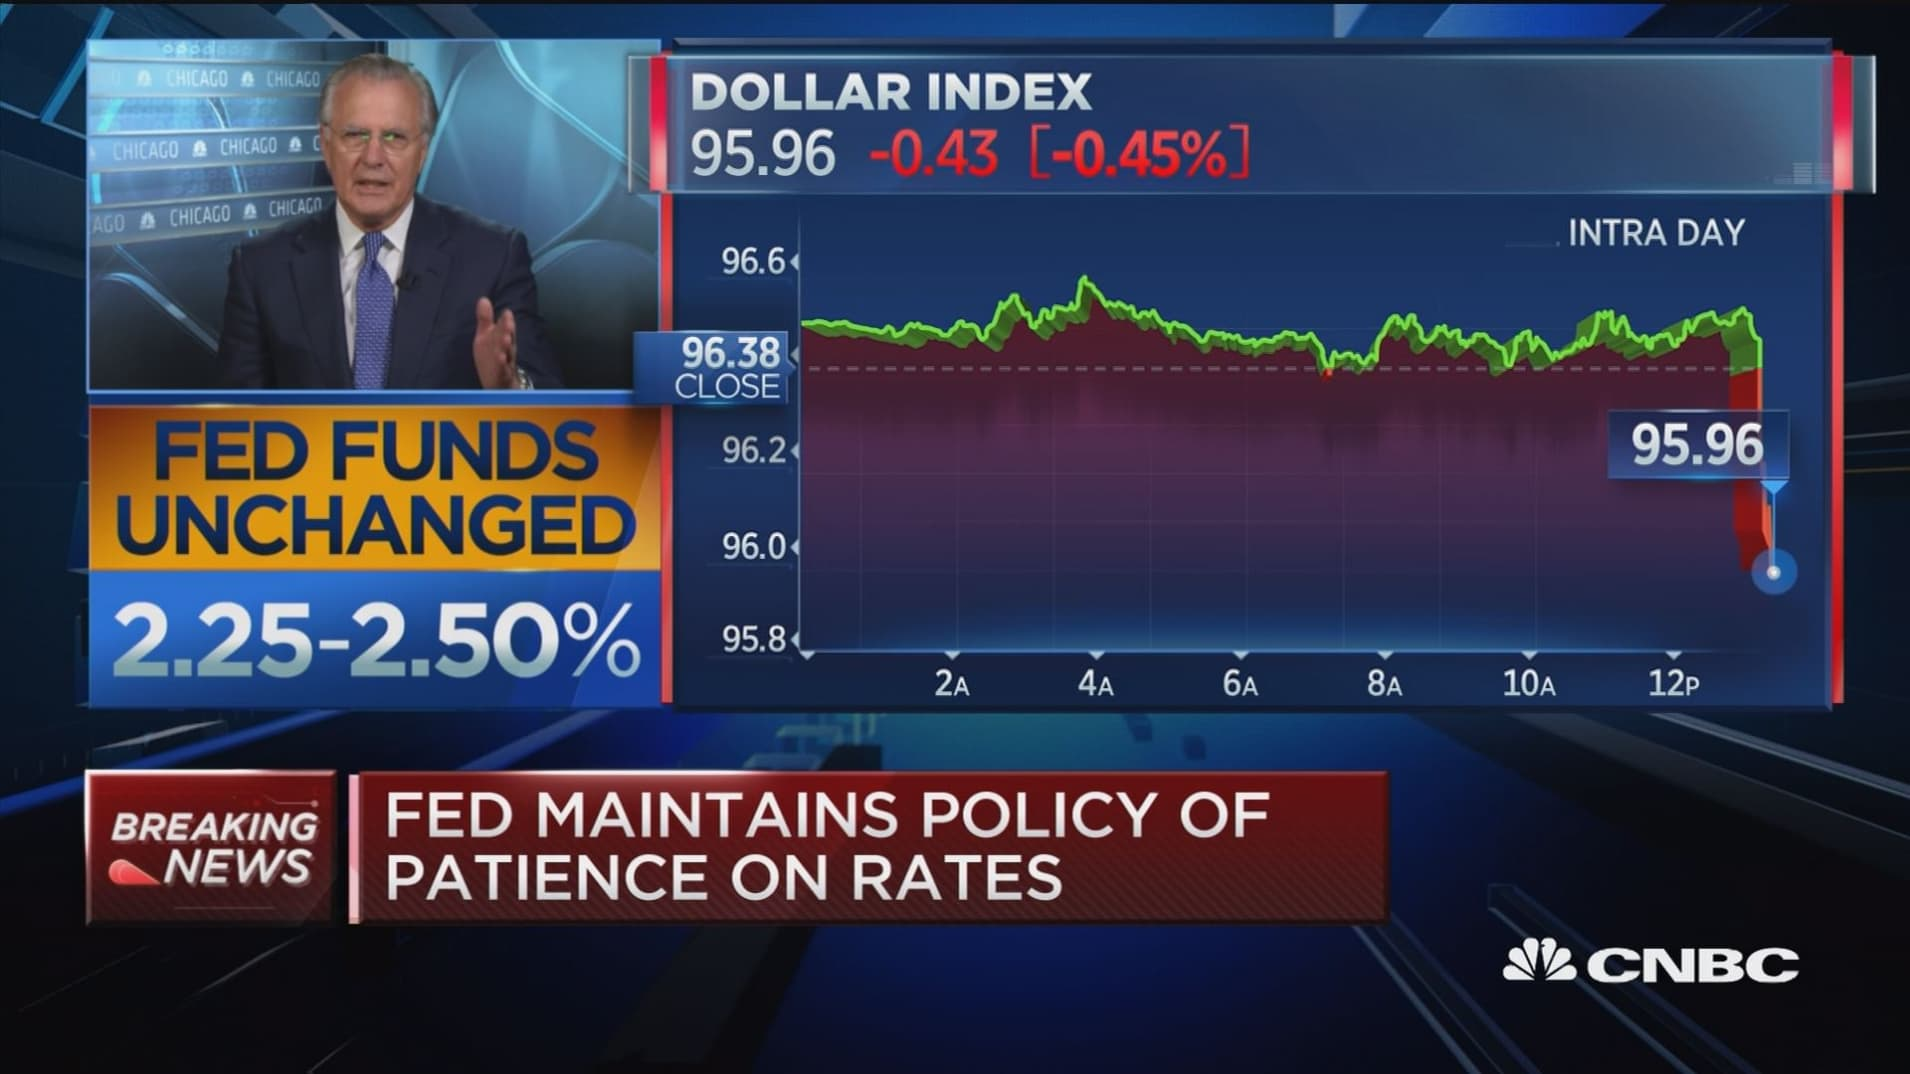 Fed's commitment to leave rates unchanged for 2019 is radical statement: Former Dallas Fed president